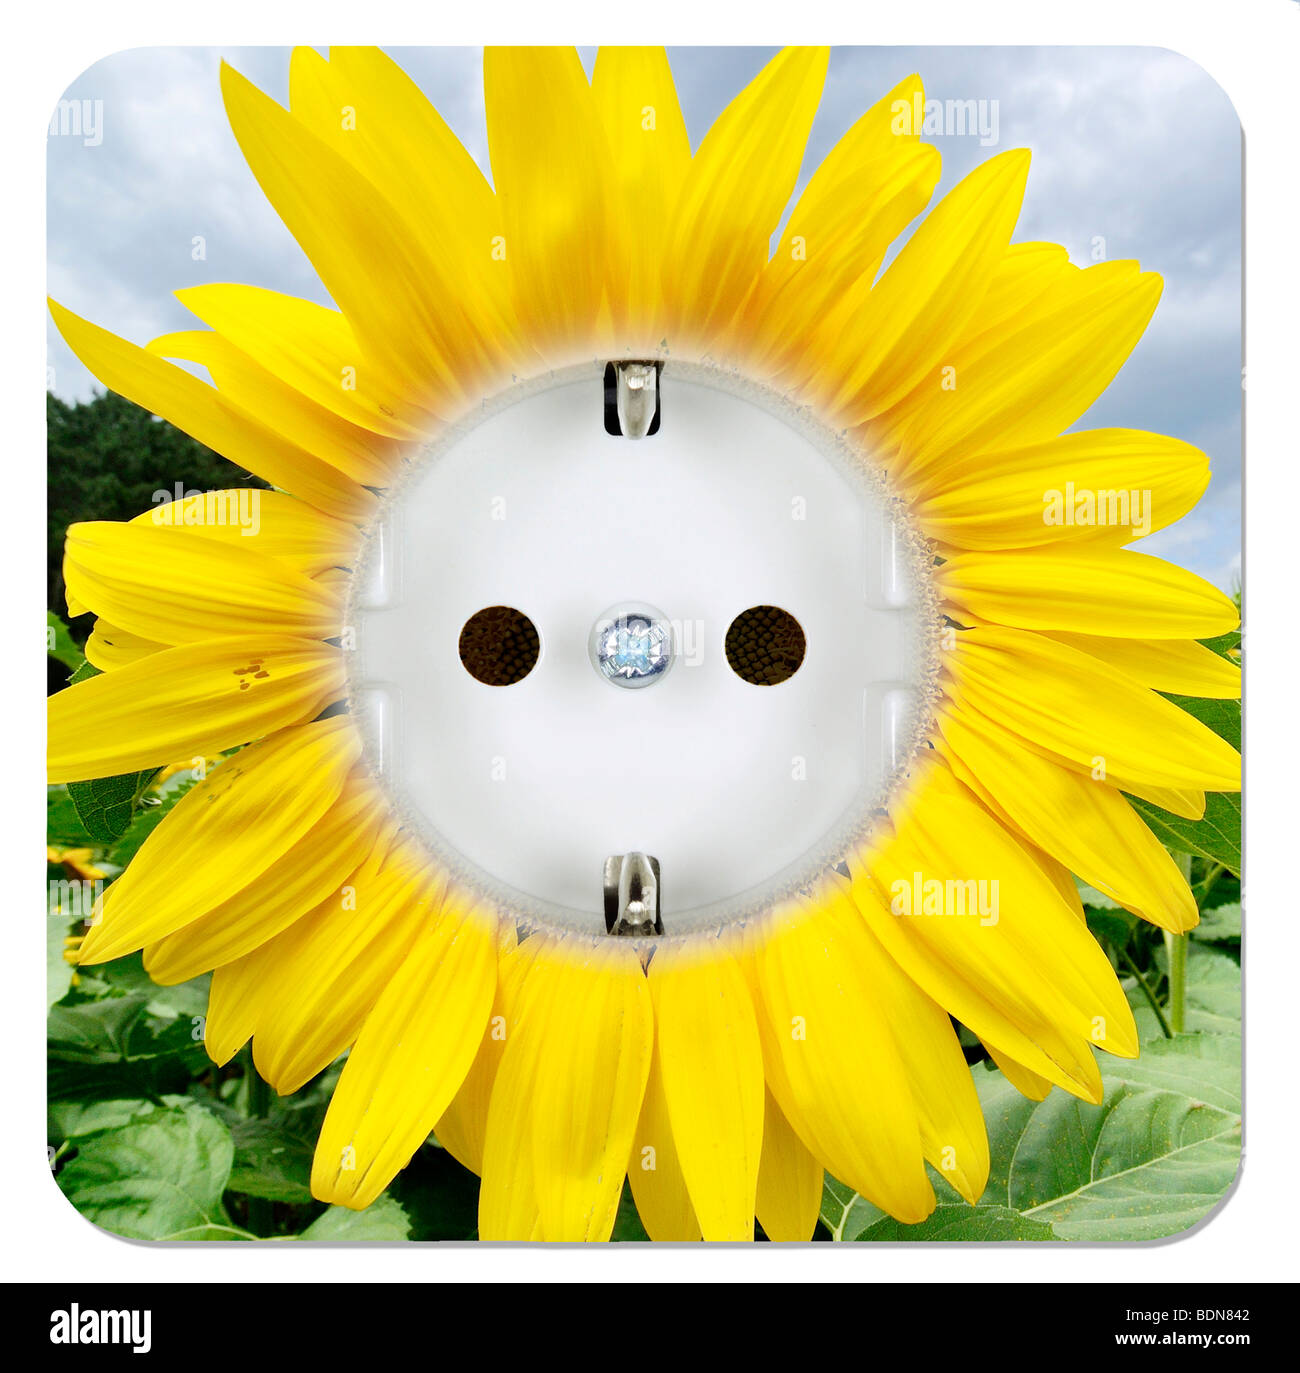 Green power outlet in the form of a sunflower - Stock Image